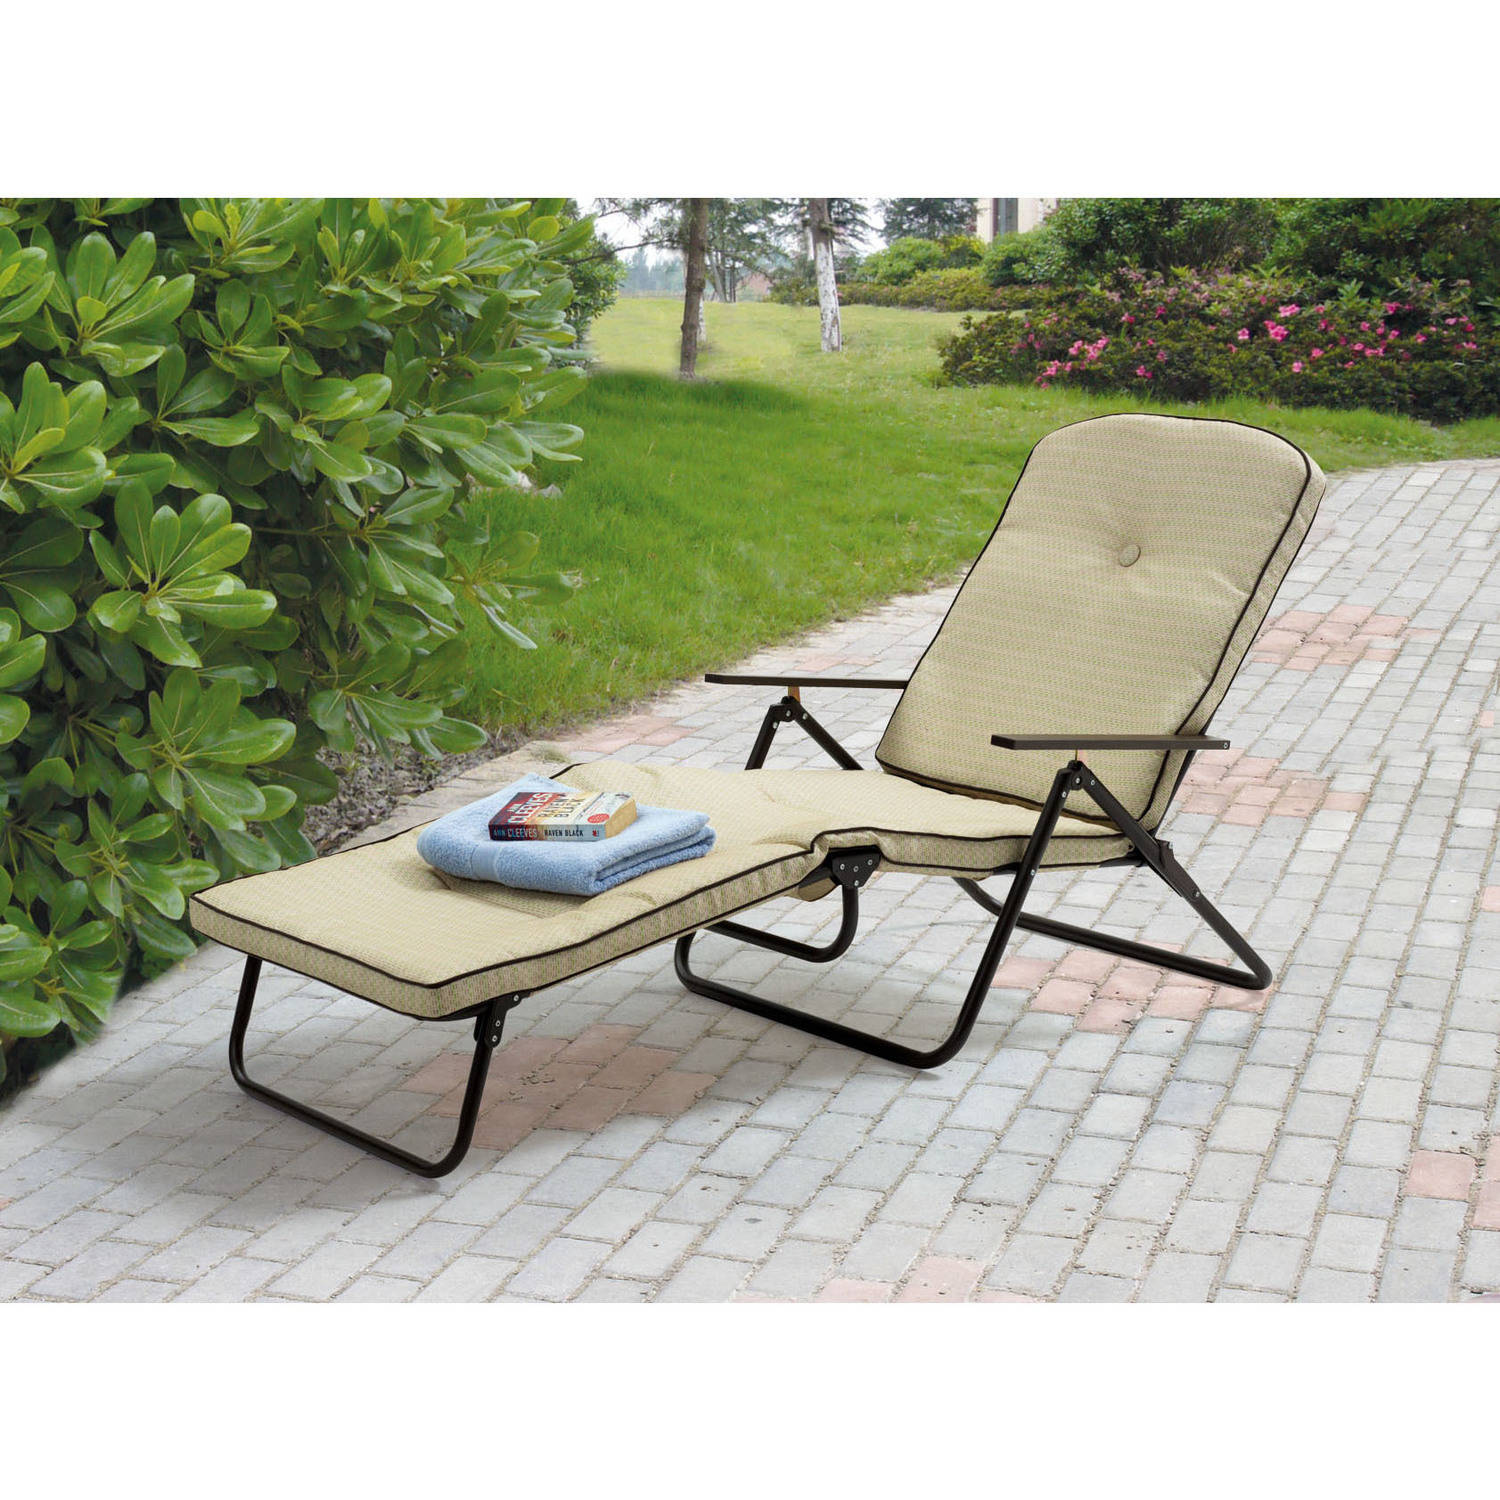 Folding Lounge Chair Details About Mainstays Sand Dune Outdoor Padded Folding Chaise Lounge Tan